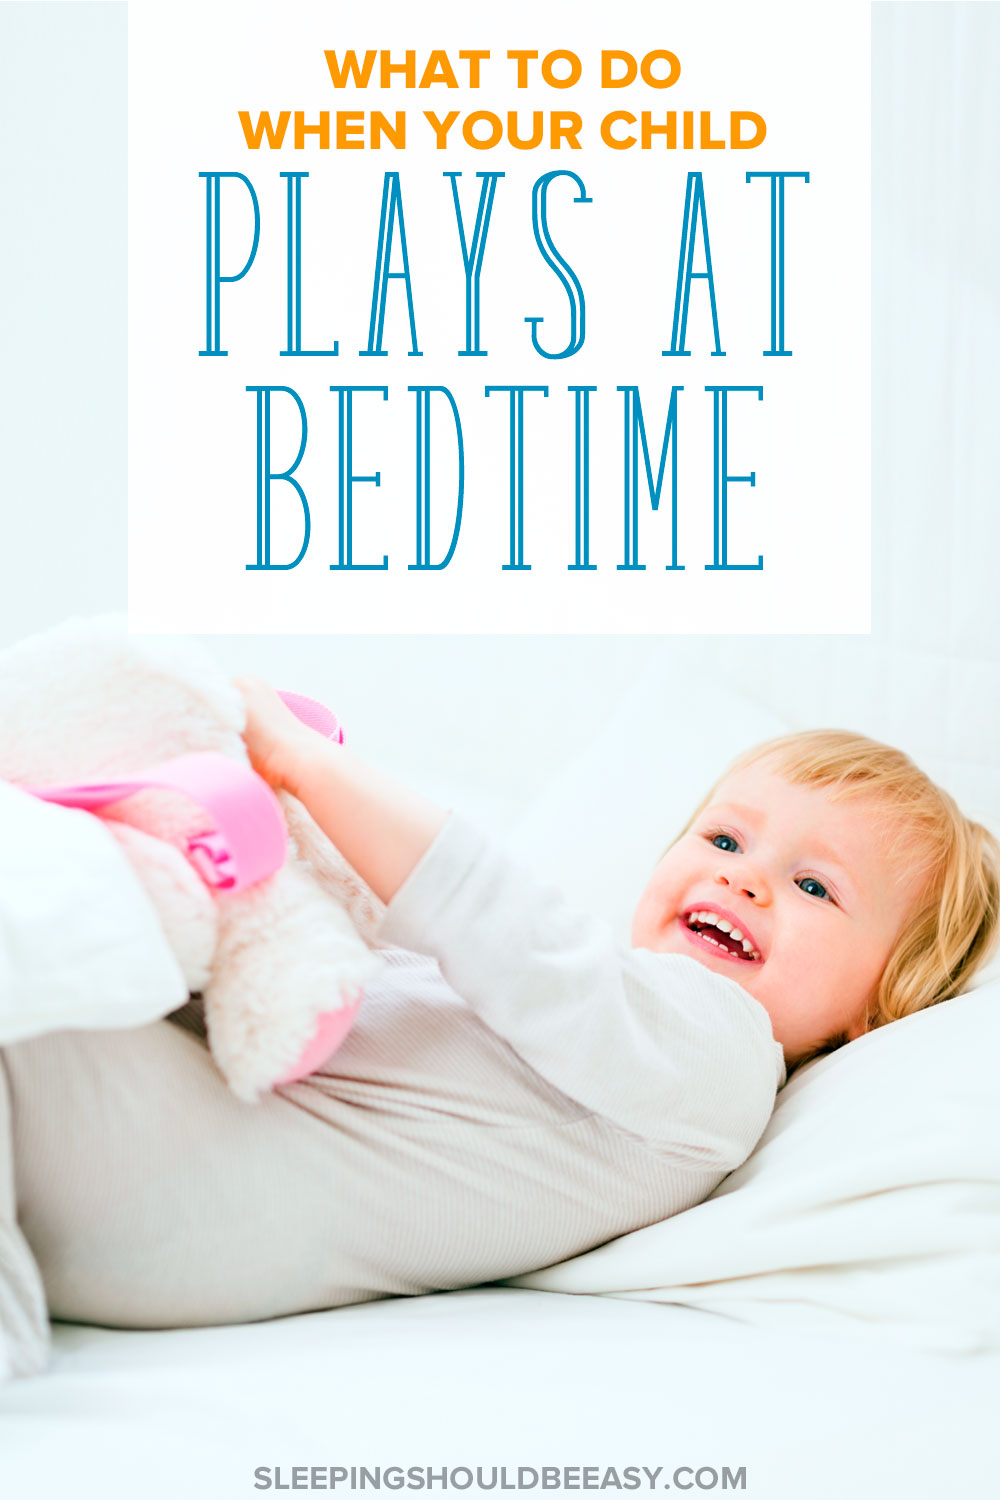 You've got a problem on your hands: come bedtime, your child plays instead of sleeps. Here's what to do to help your child sleep.